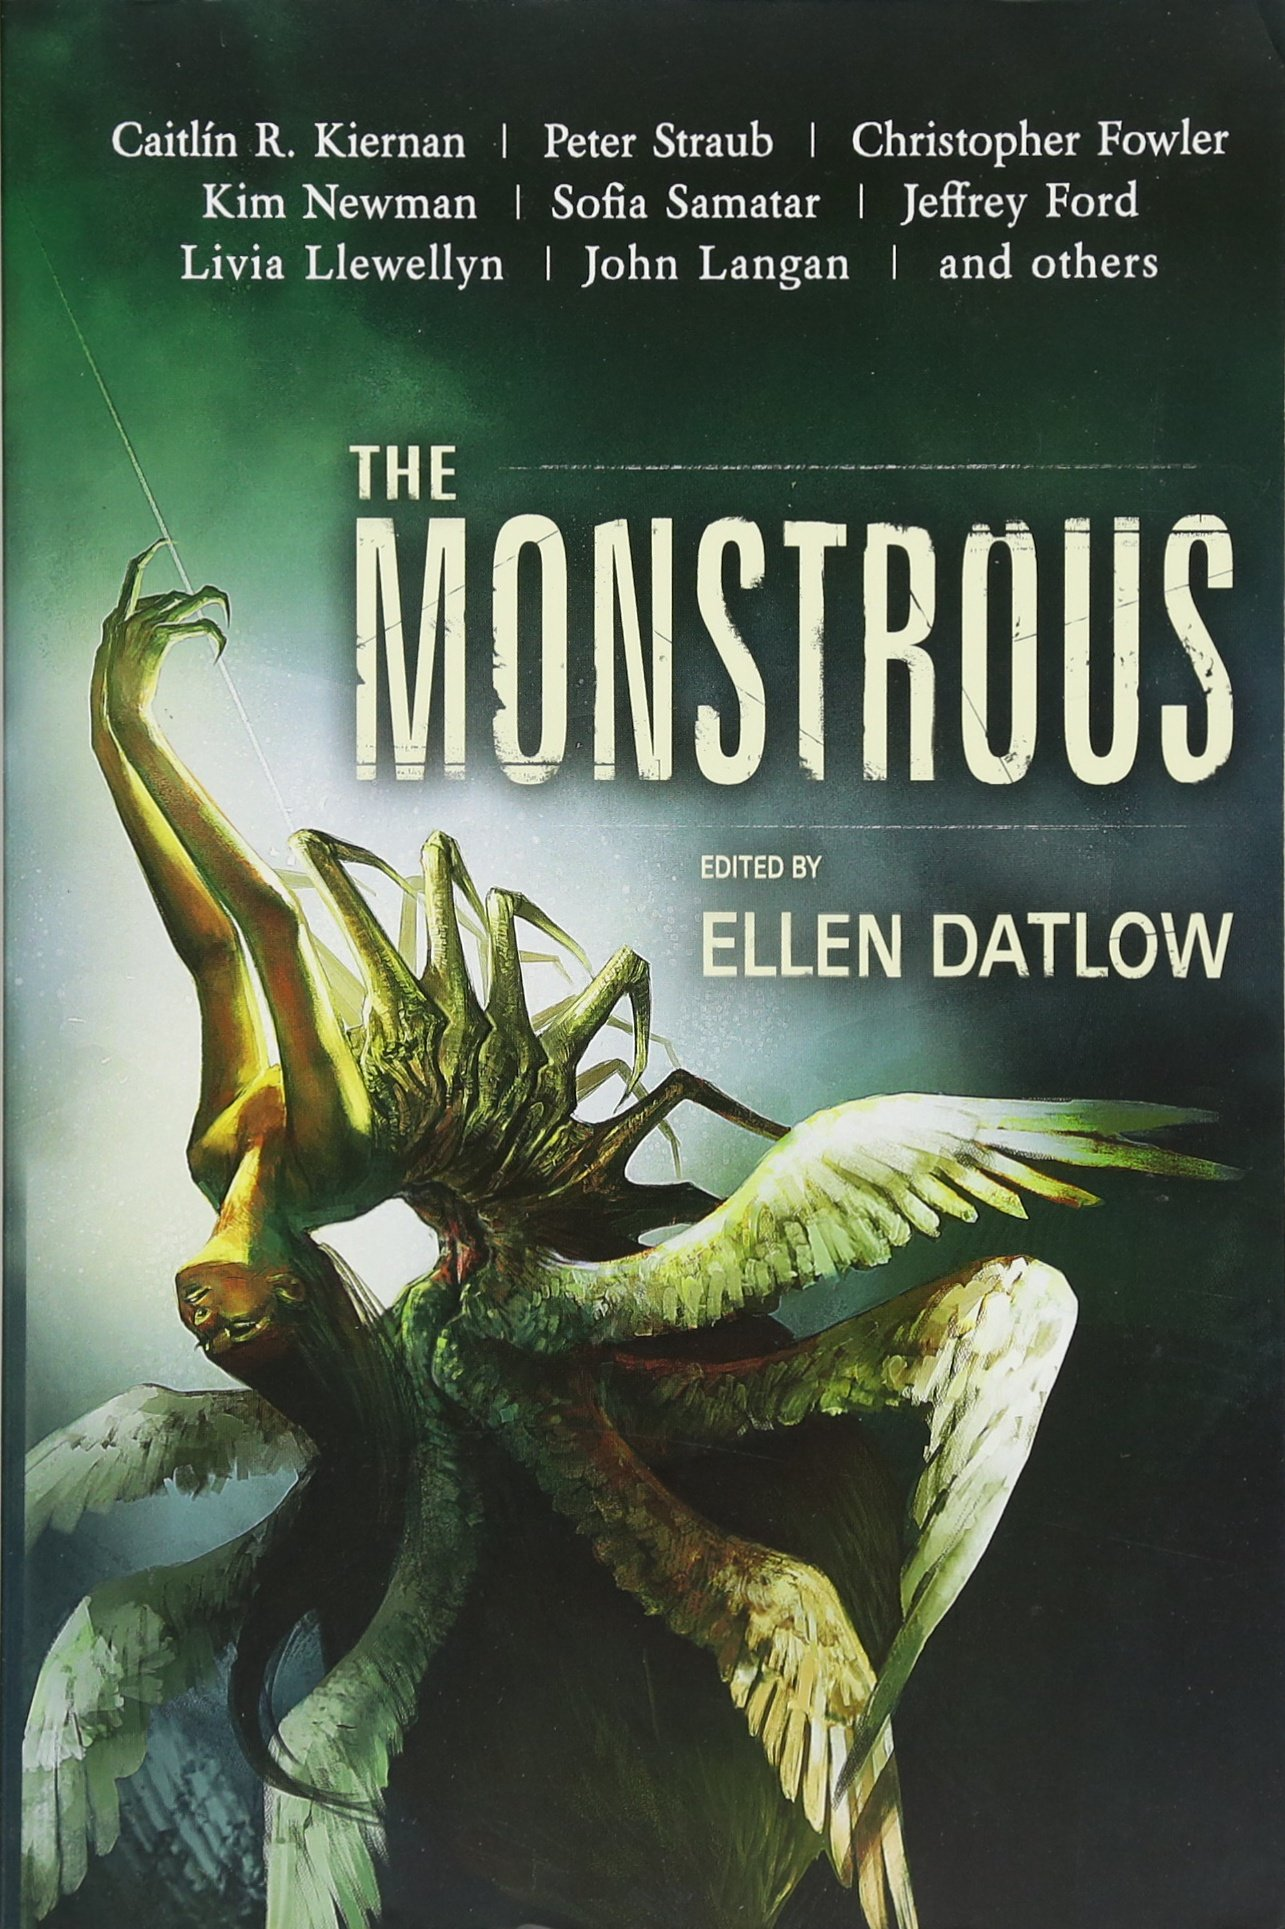 Image result for the monstrous ellen datlow book cover